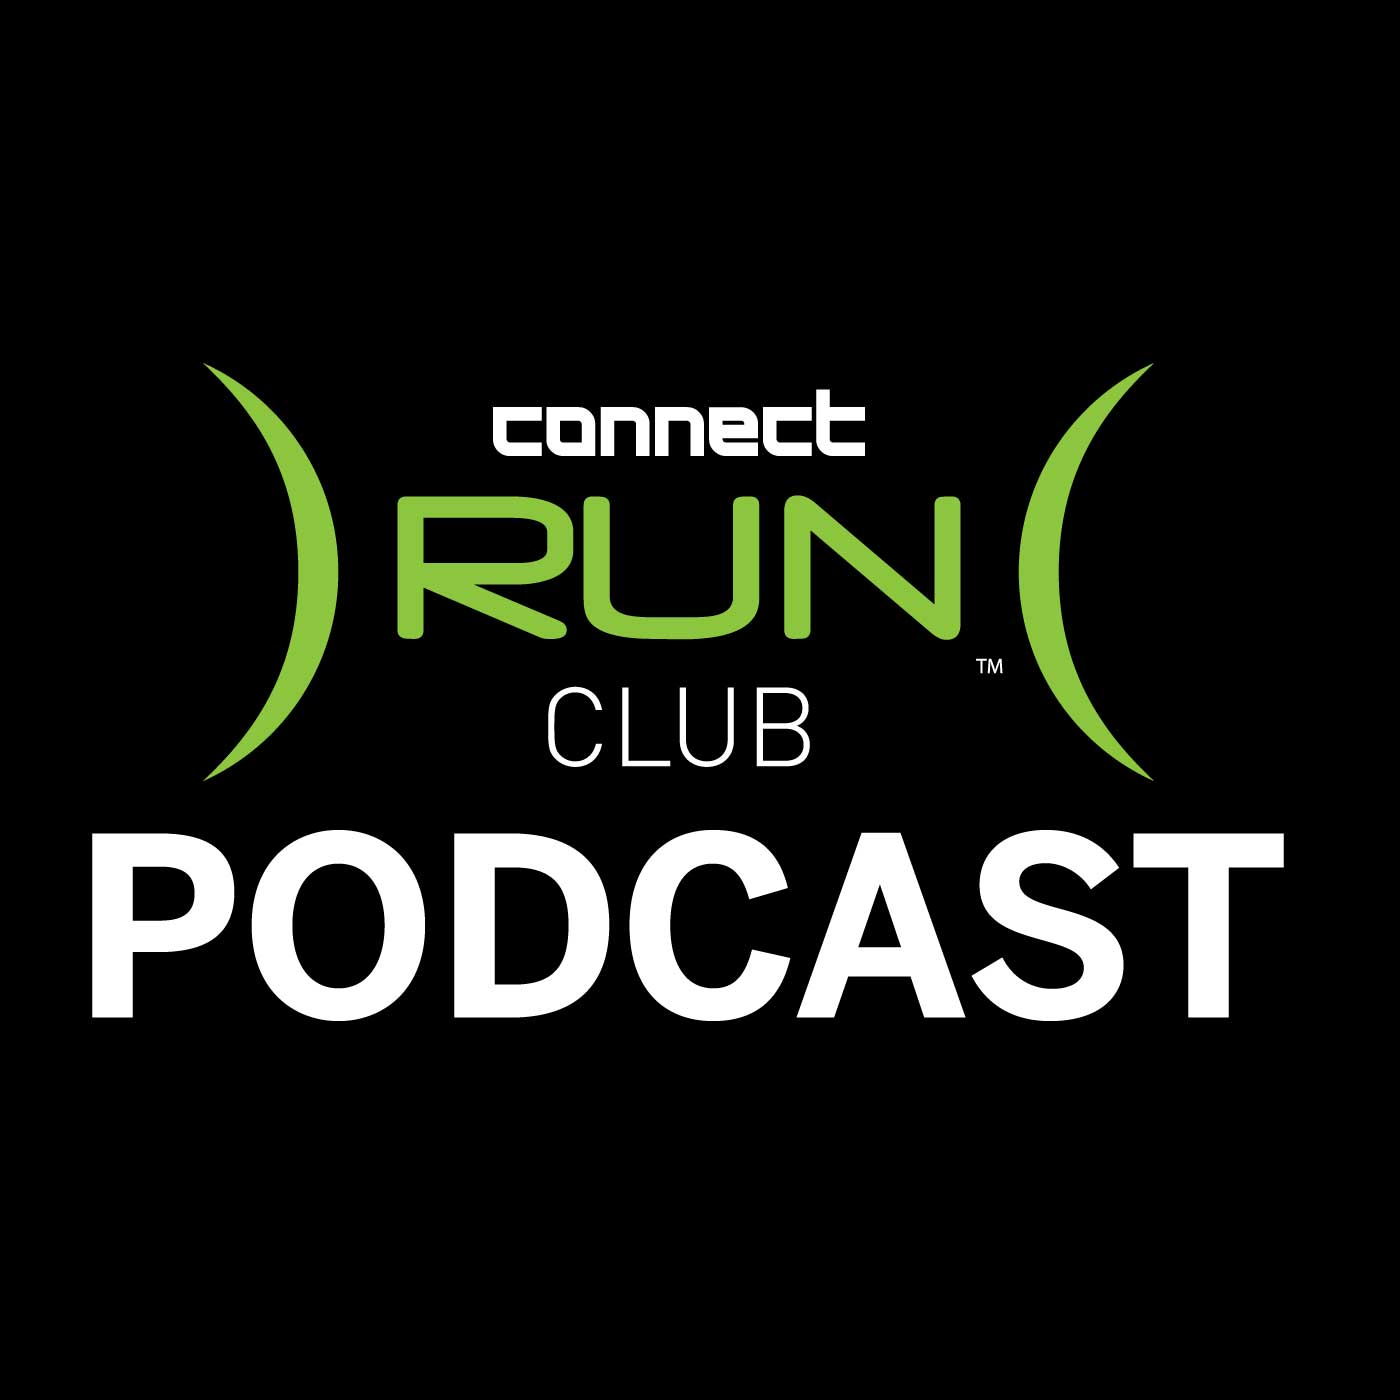 The Connect Run Club Podcast: Running Tips | Inspiring Stories | Race Reports - Connect Run Club